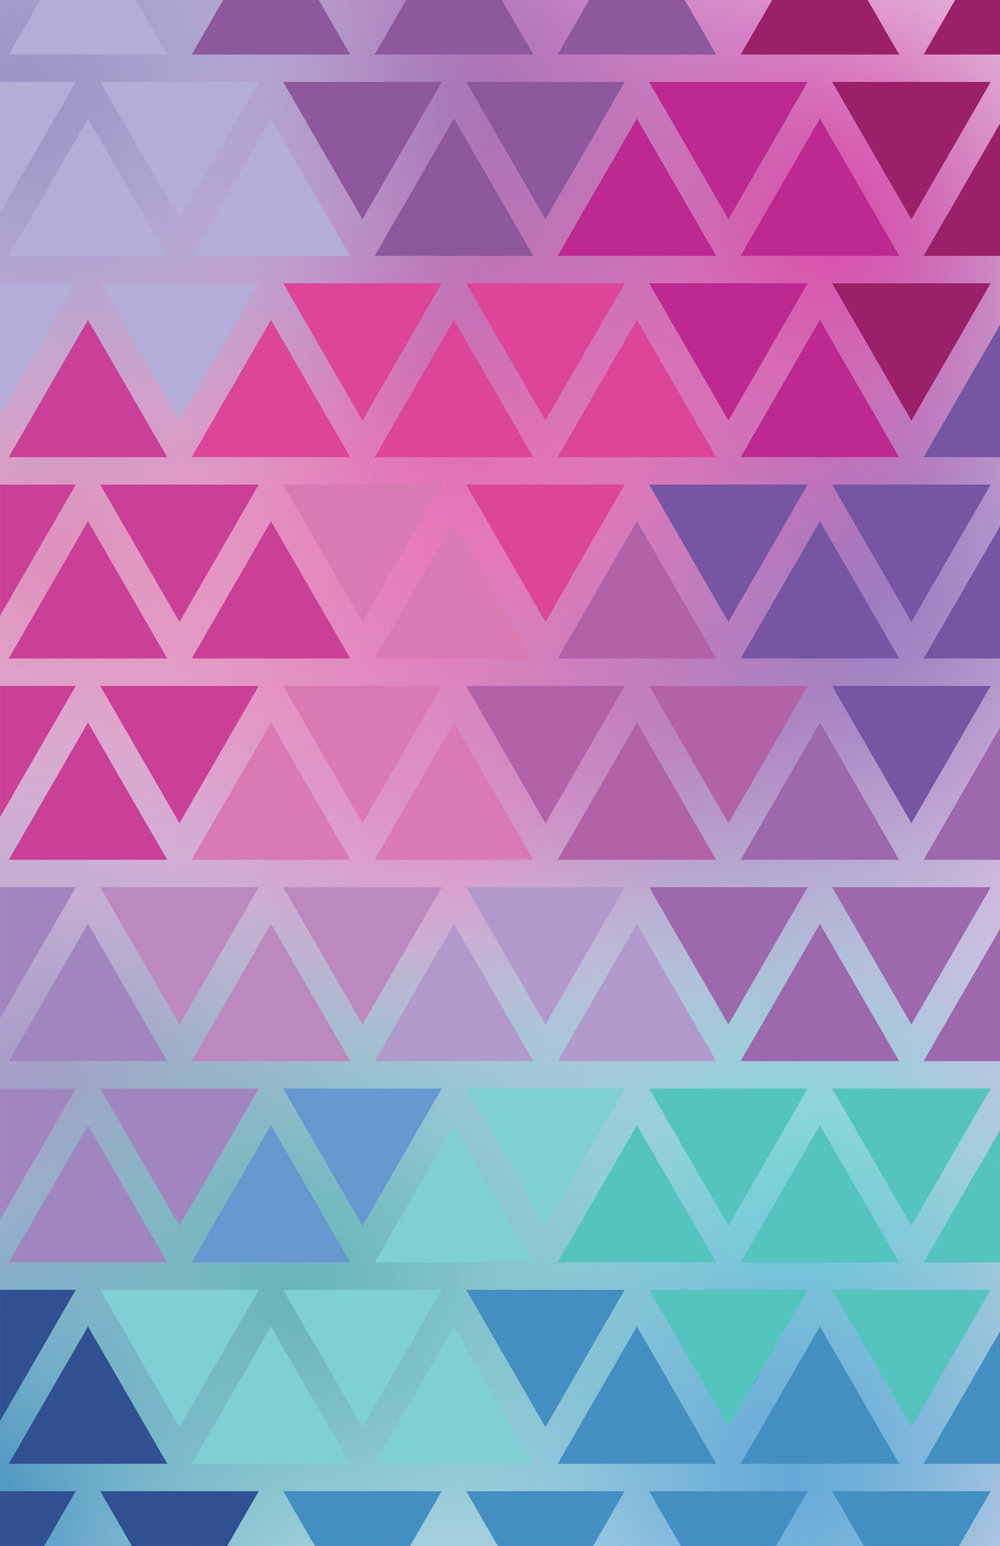 0302_sofar_sounds_santamonica-websized-triangles.jpg